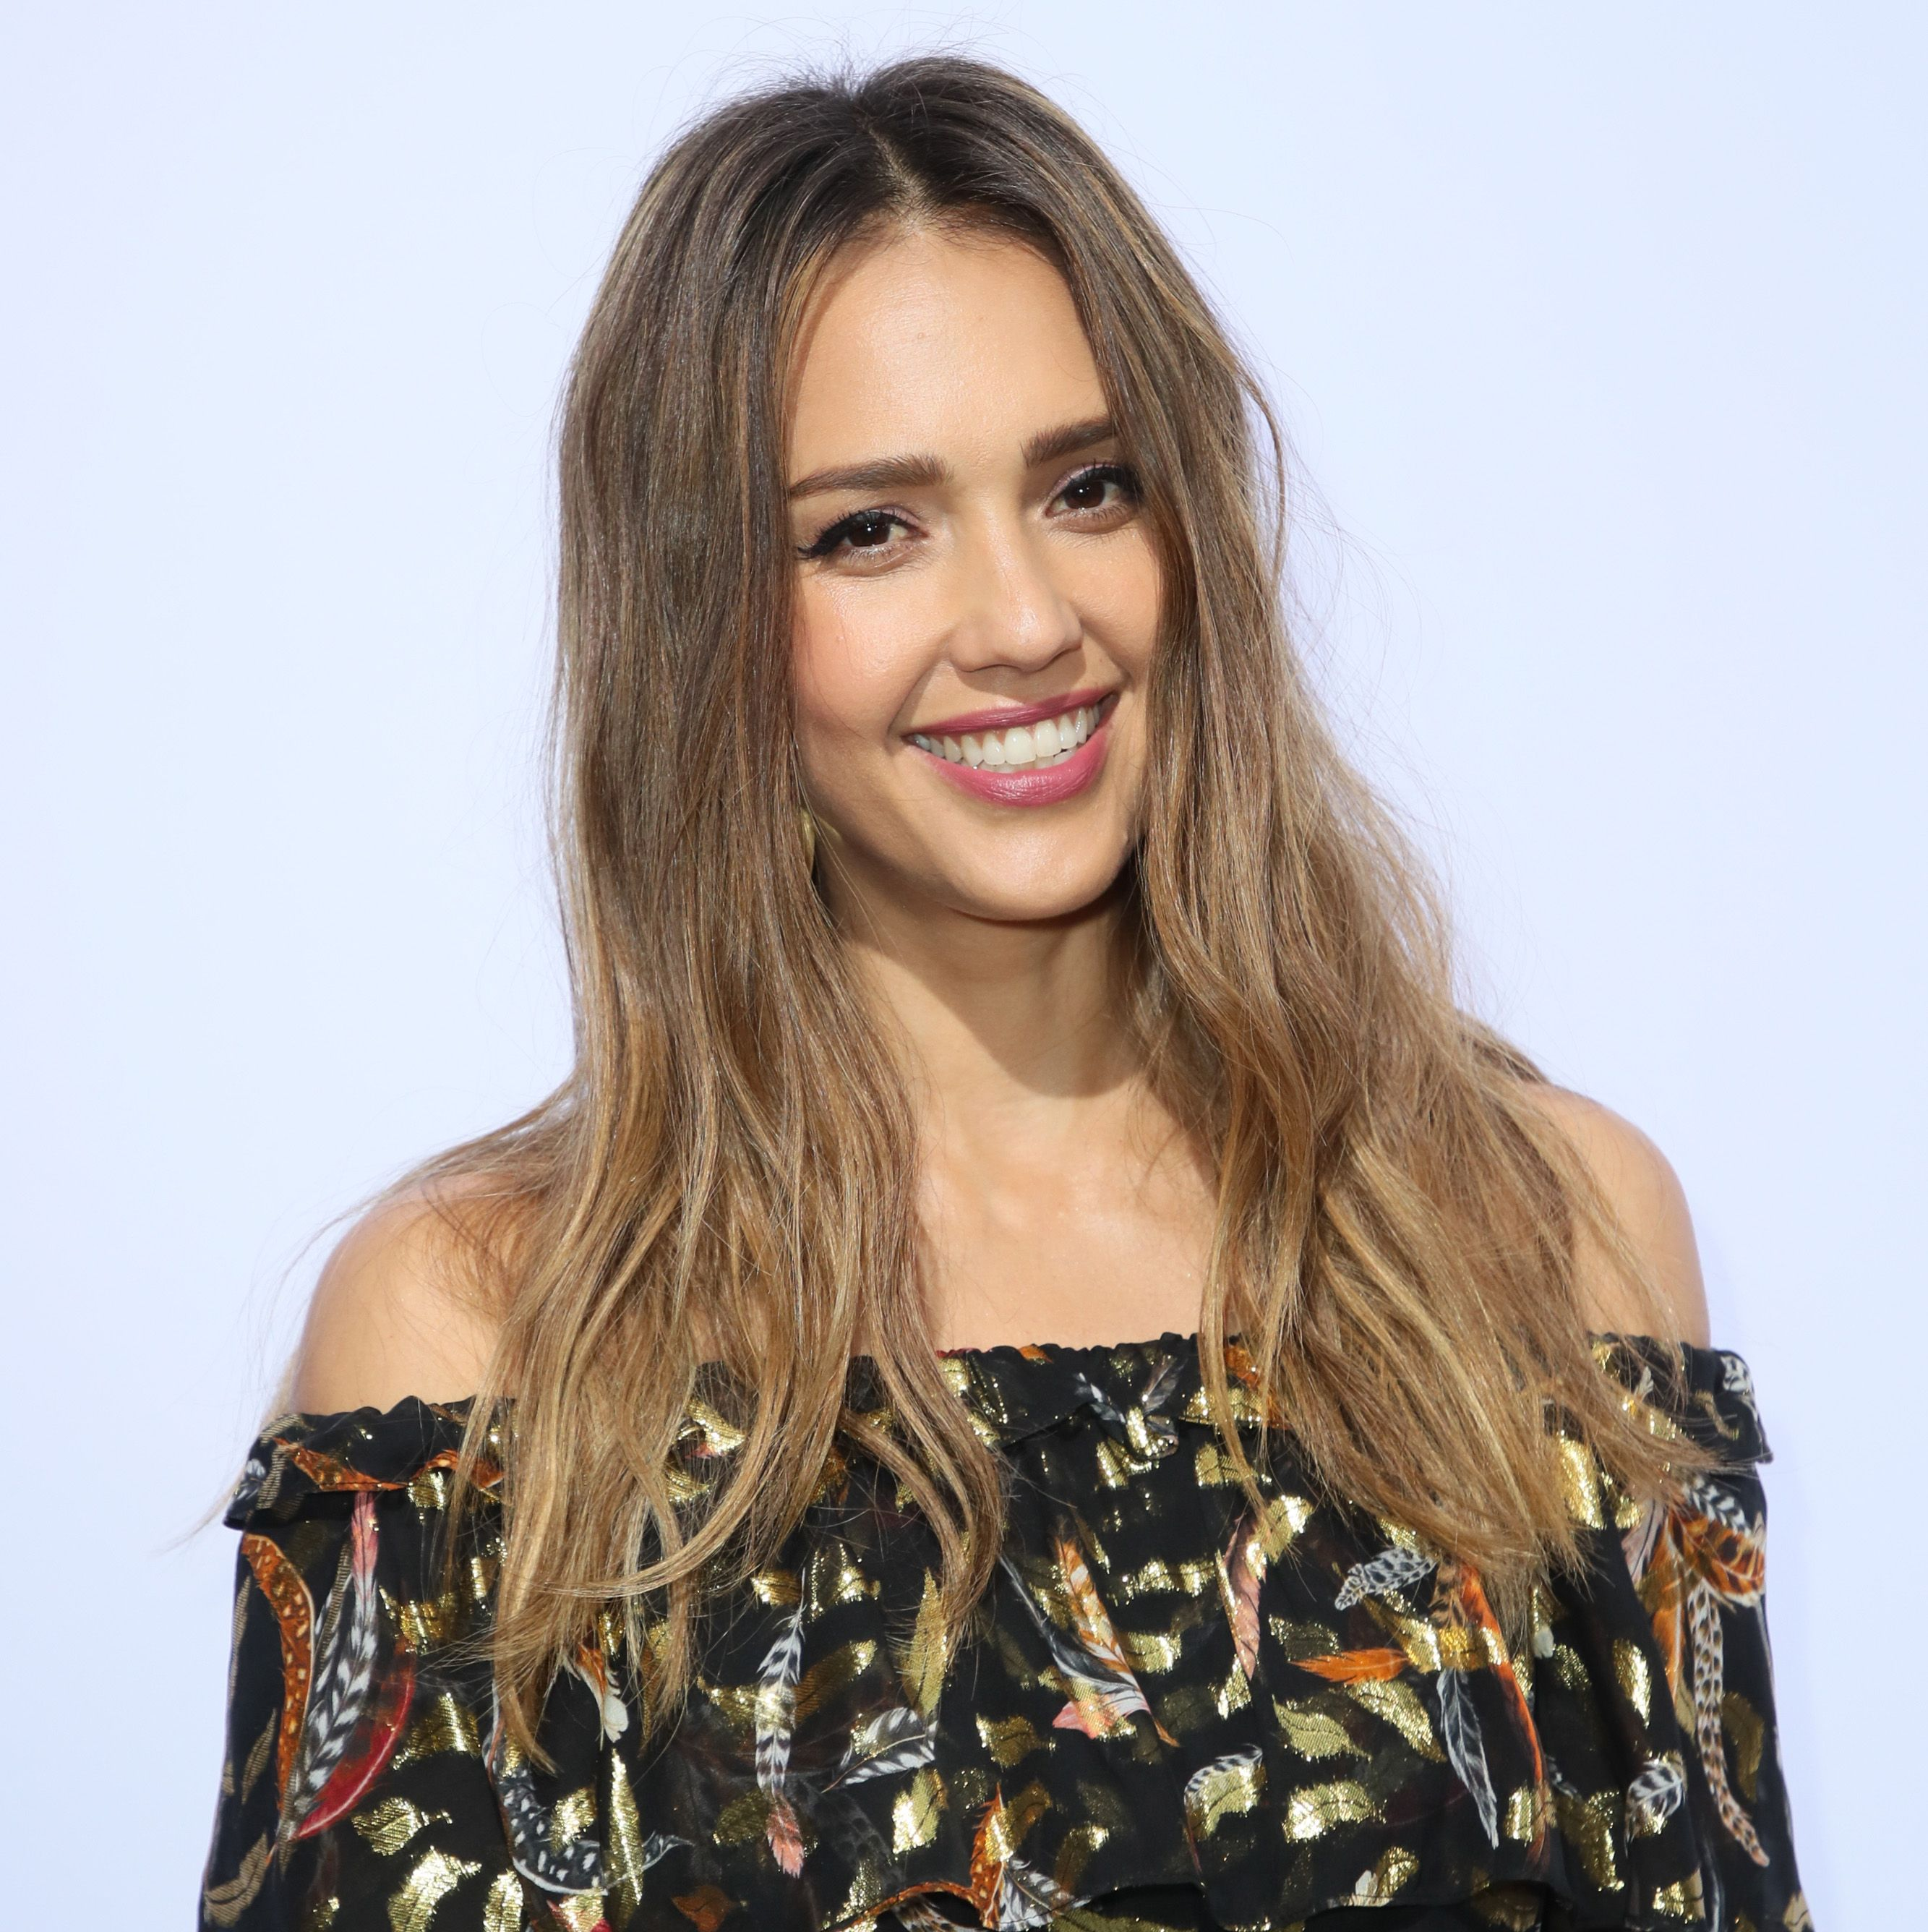 Hairstyles for Oval Faces - Long Tousled Waves